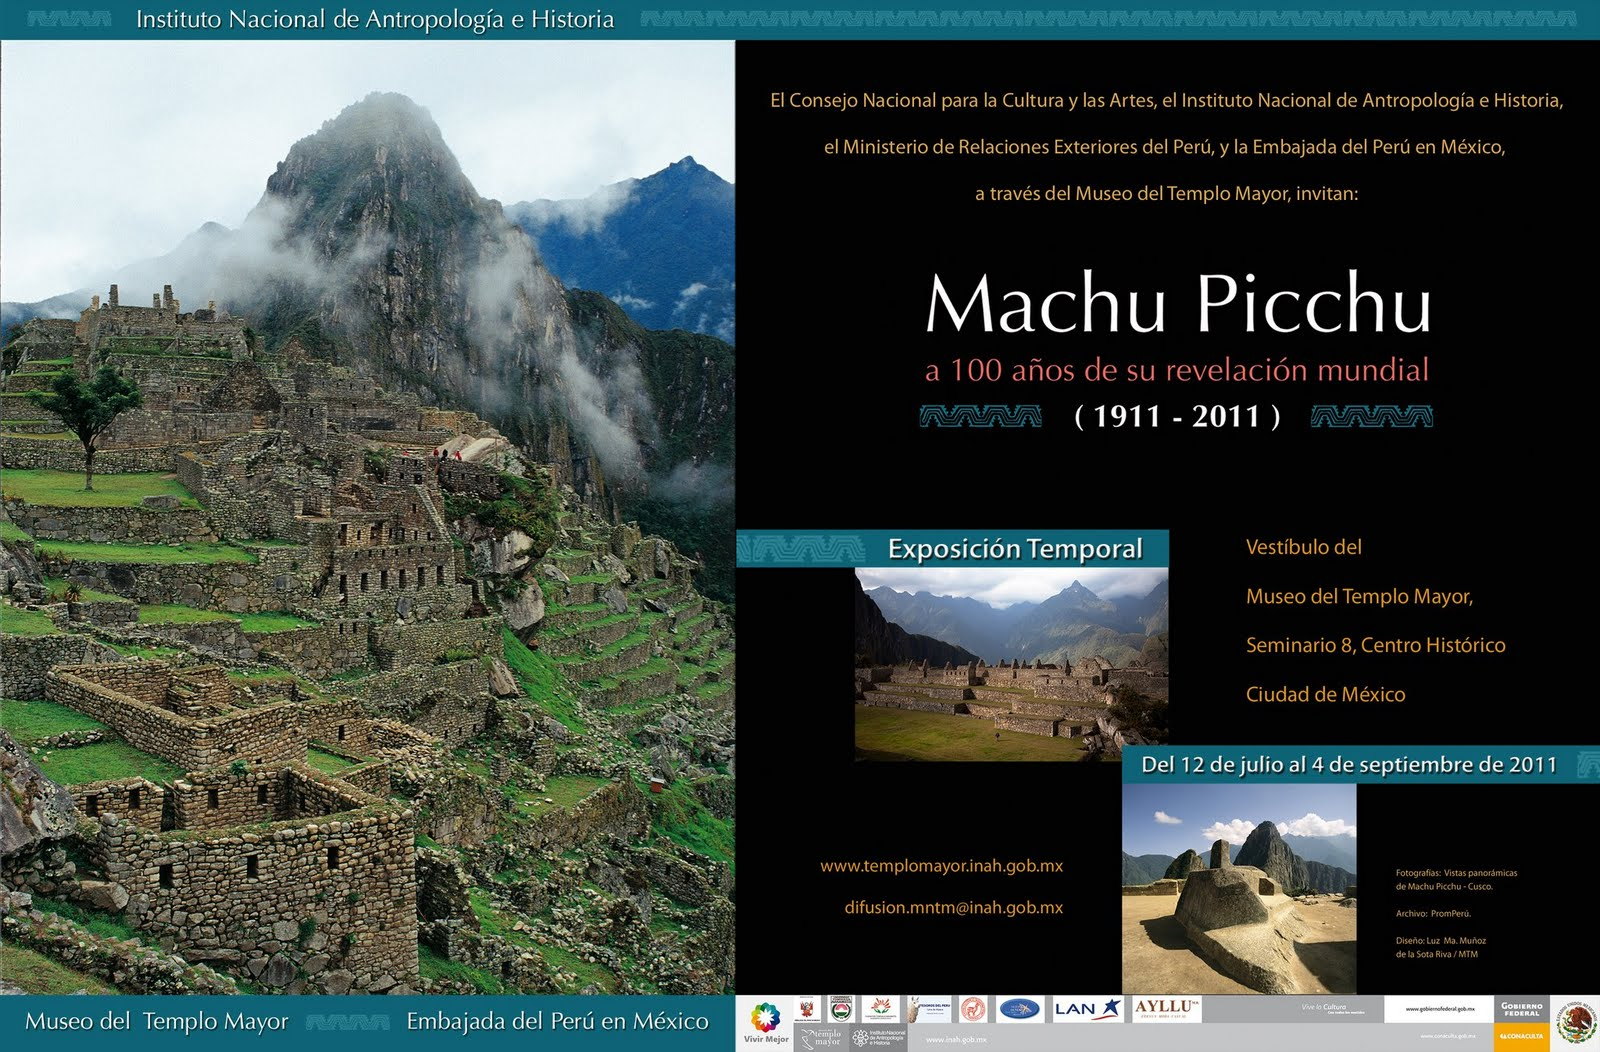 Exposicin fotogrfica Machu Picchu en Mxico